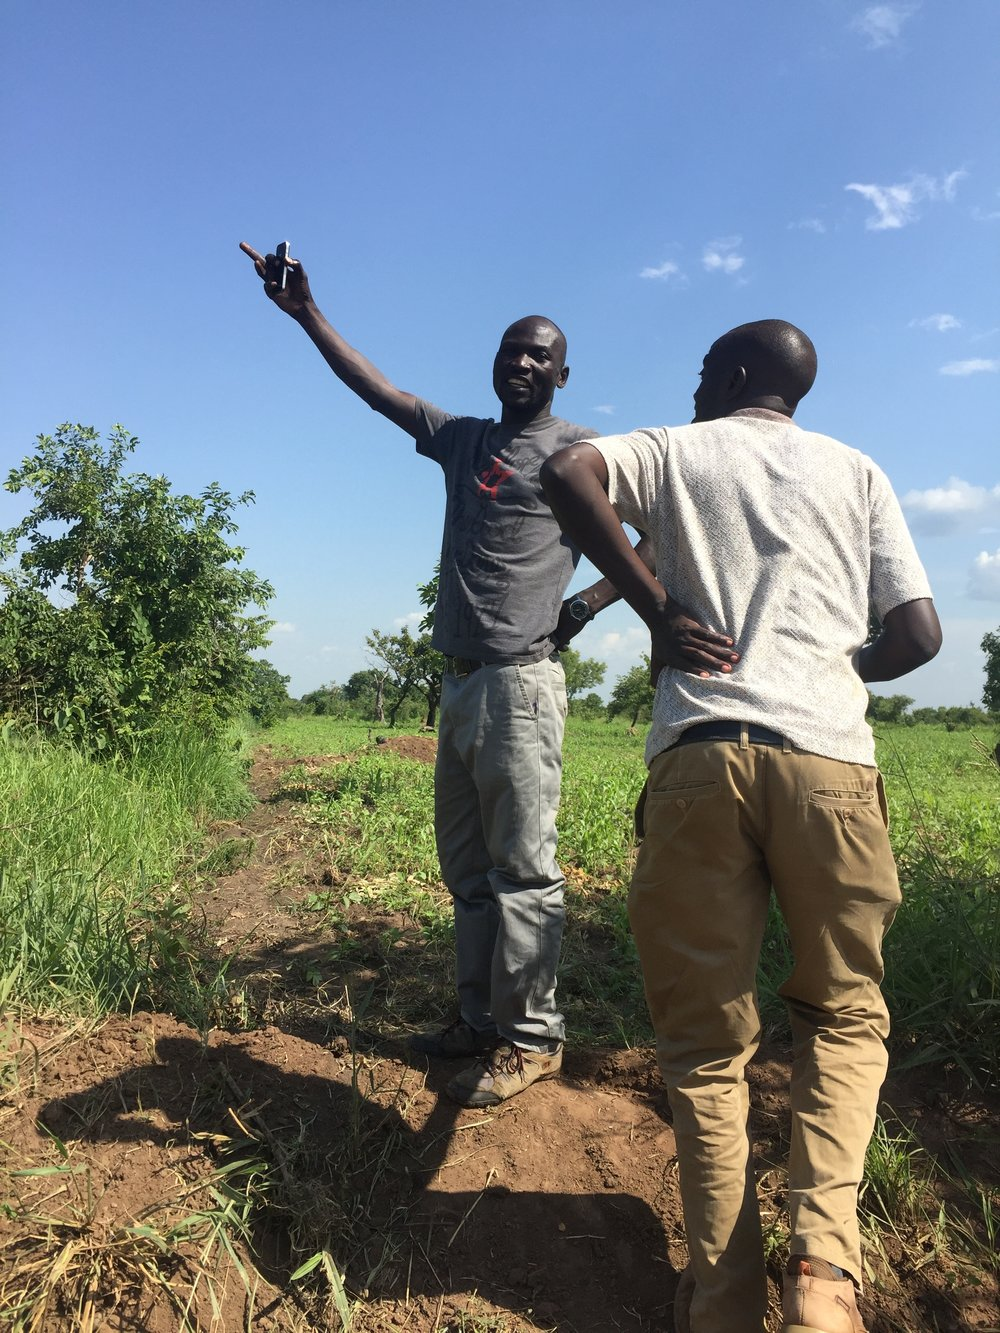 NUMEM Clinic co-founders, Olanya Denish and Atiya Patrick Kasagara showing Asteroidea the land purchased for the future hospital, the first of its kind in Pader District.